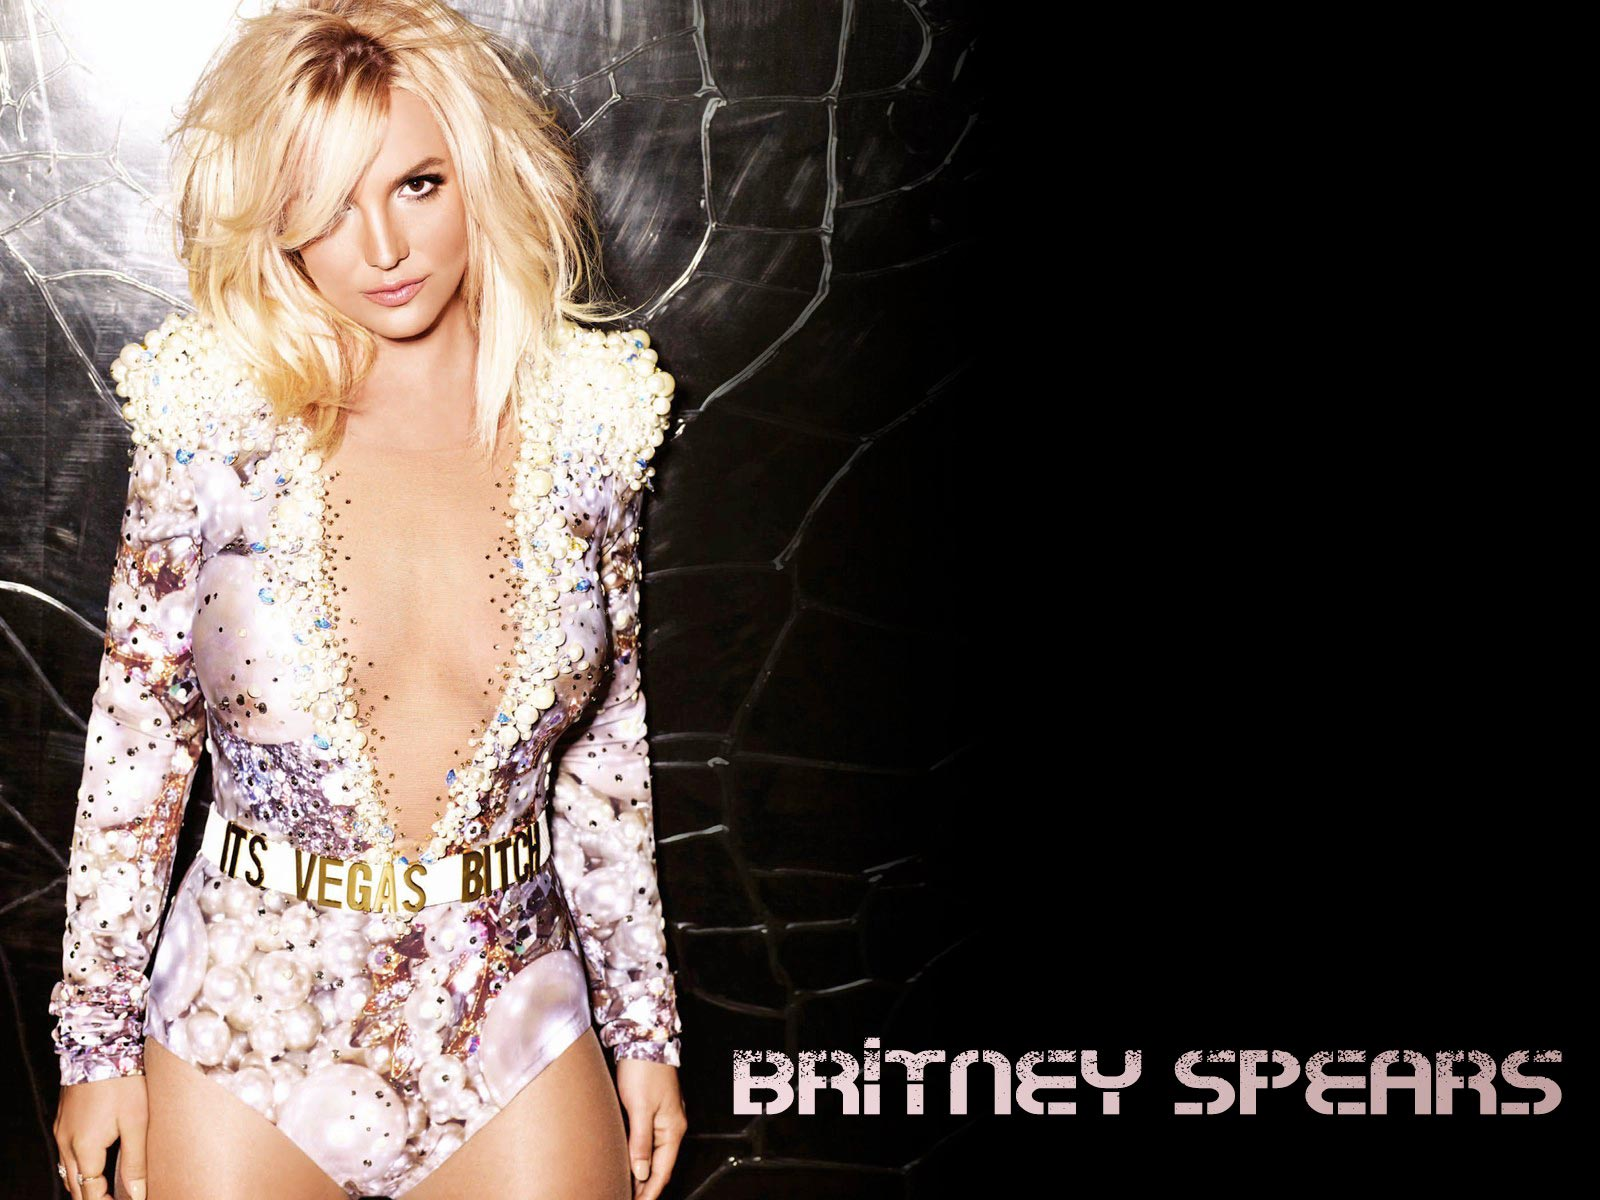 Santa Banta Car Wallpaper Britney Spears Hot Wallpapers 5